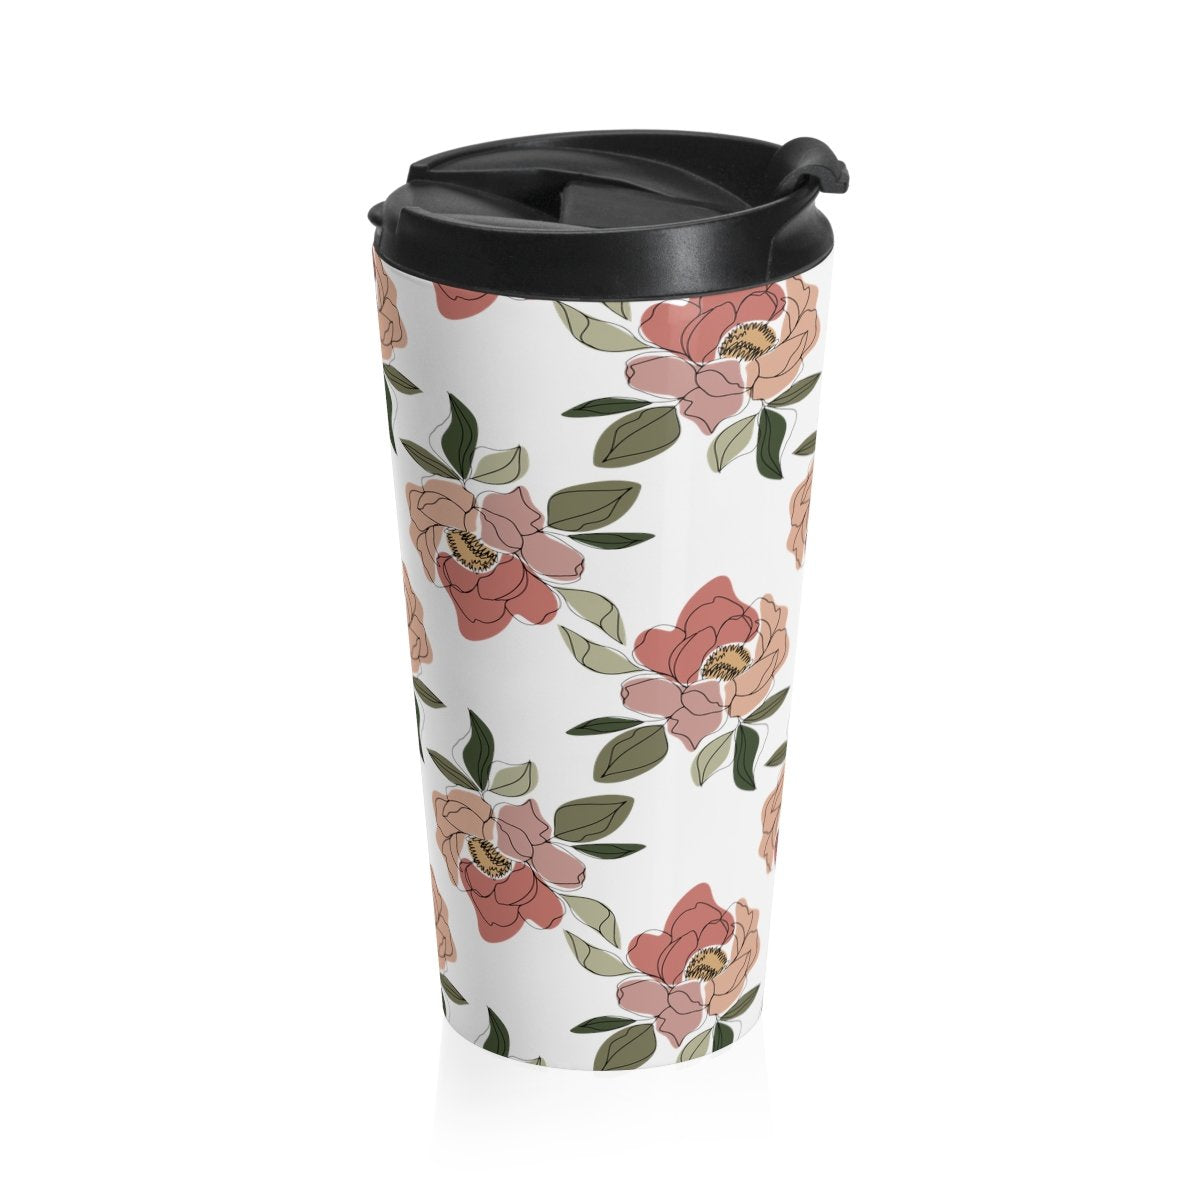 Floral Print Travel Mug - Cream and Sugar Coffee House & Brewing Co.